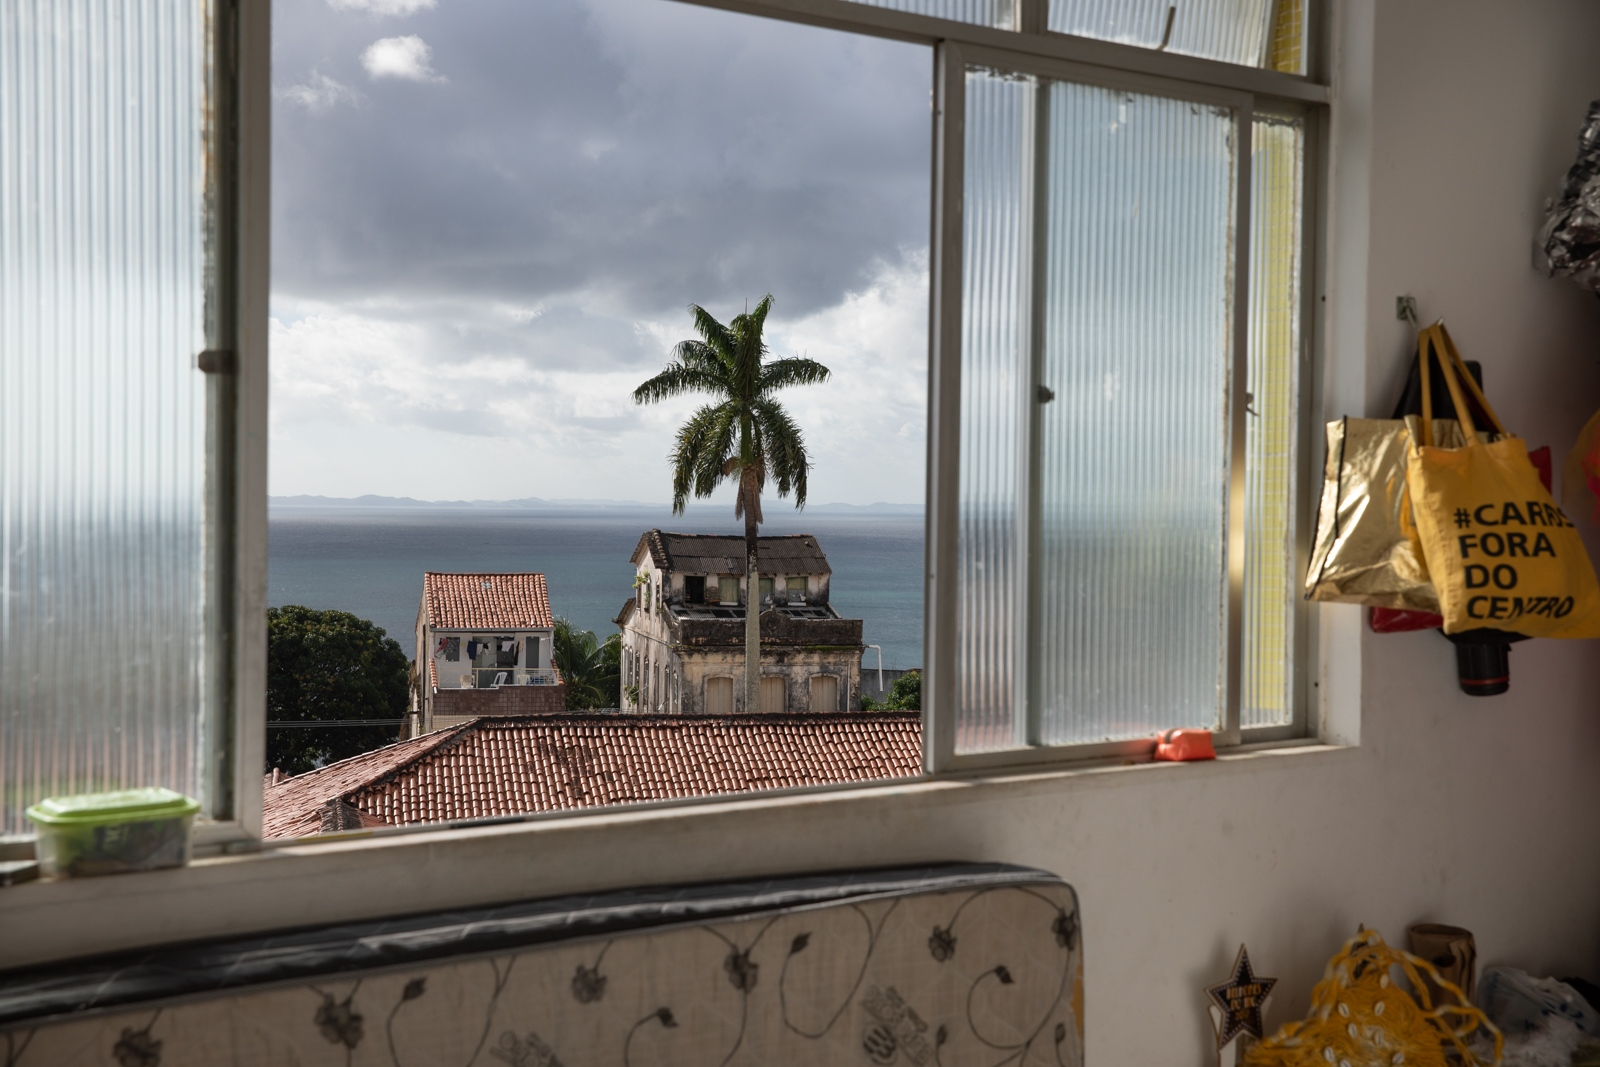 View from Teodoro's apartment at 2 de Julho neighbourhood in Salvador. The 2 de Julho region is a underground central region of the city where many LGBT bars and nightclubs had open recently. Salvador.